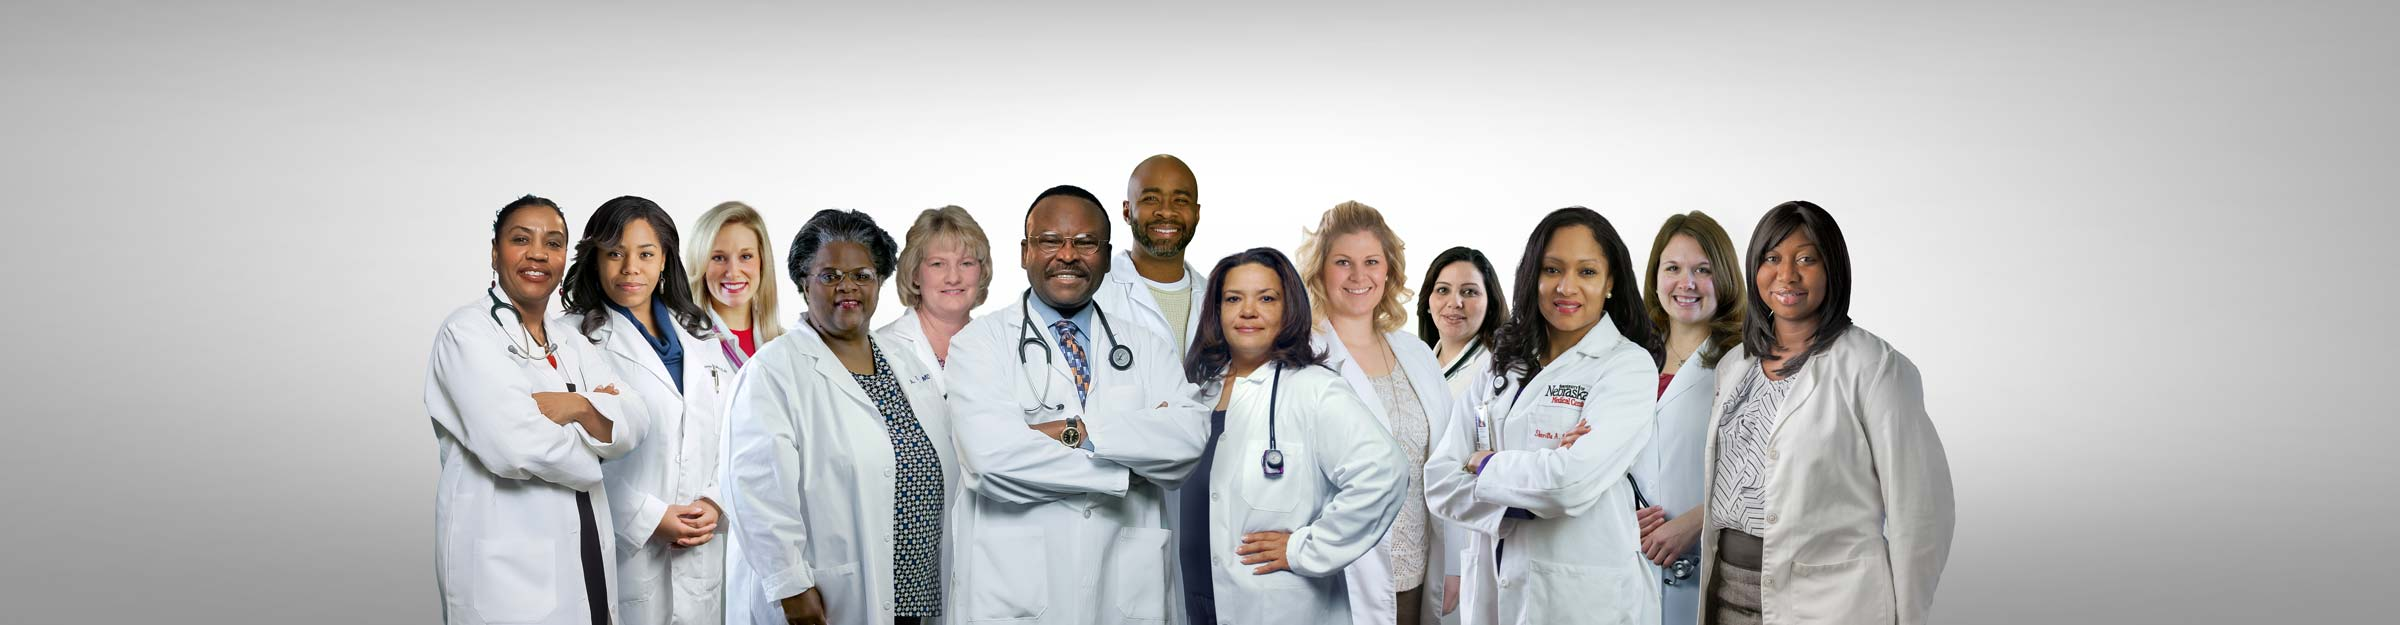 Group-One-Medical7